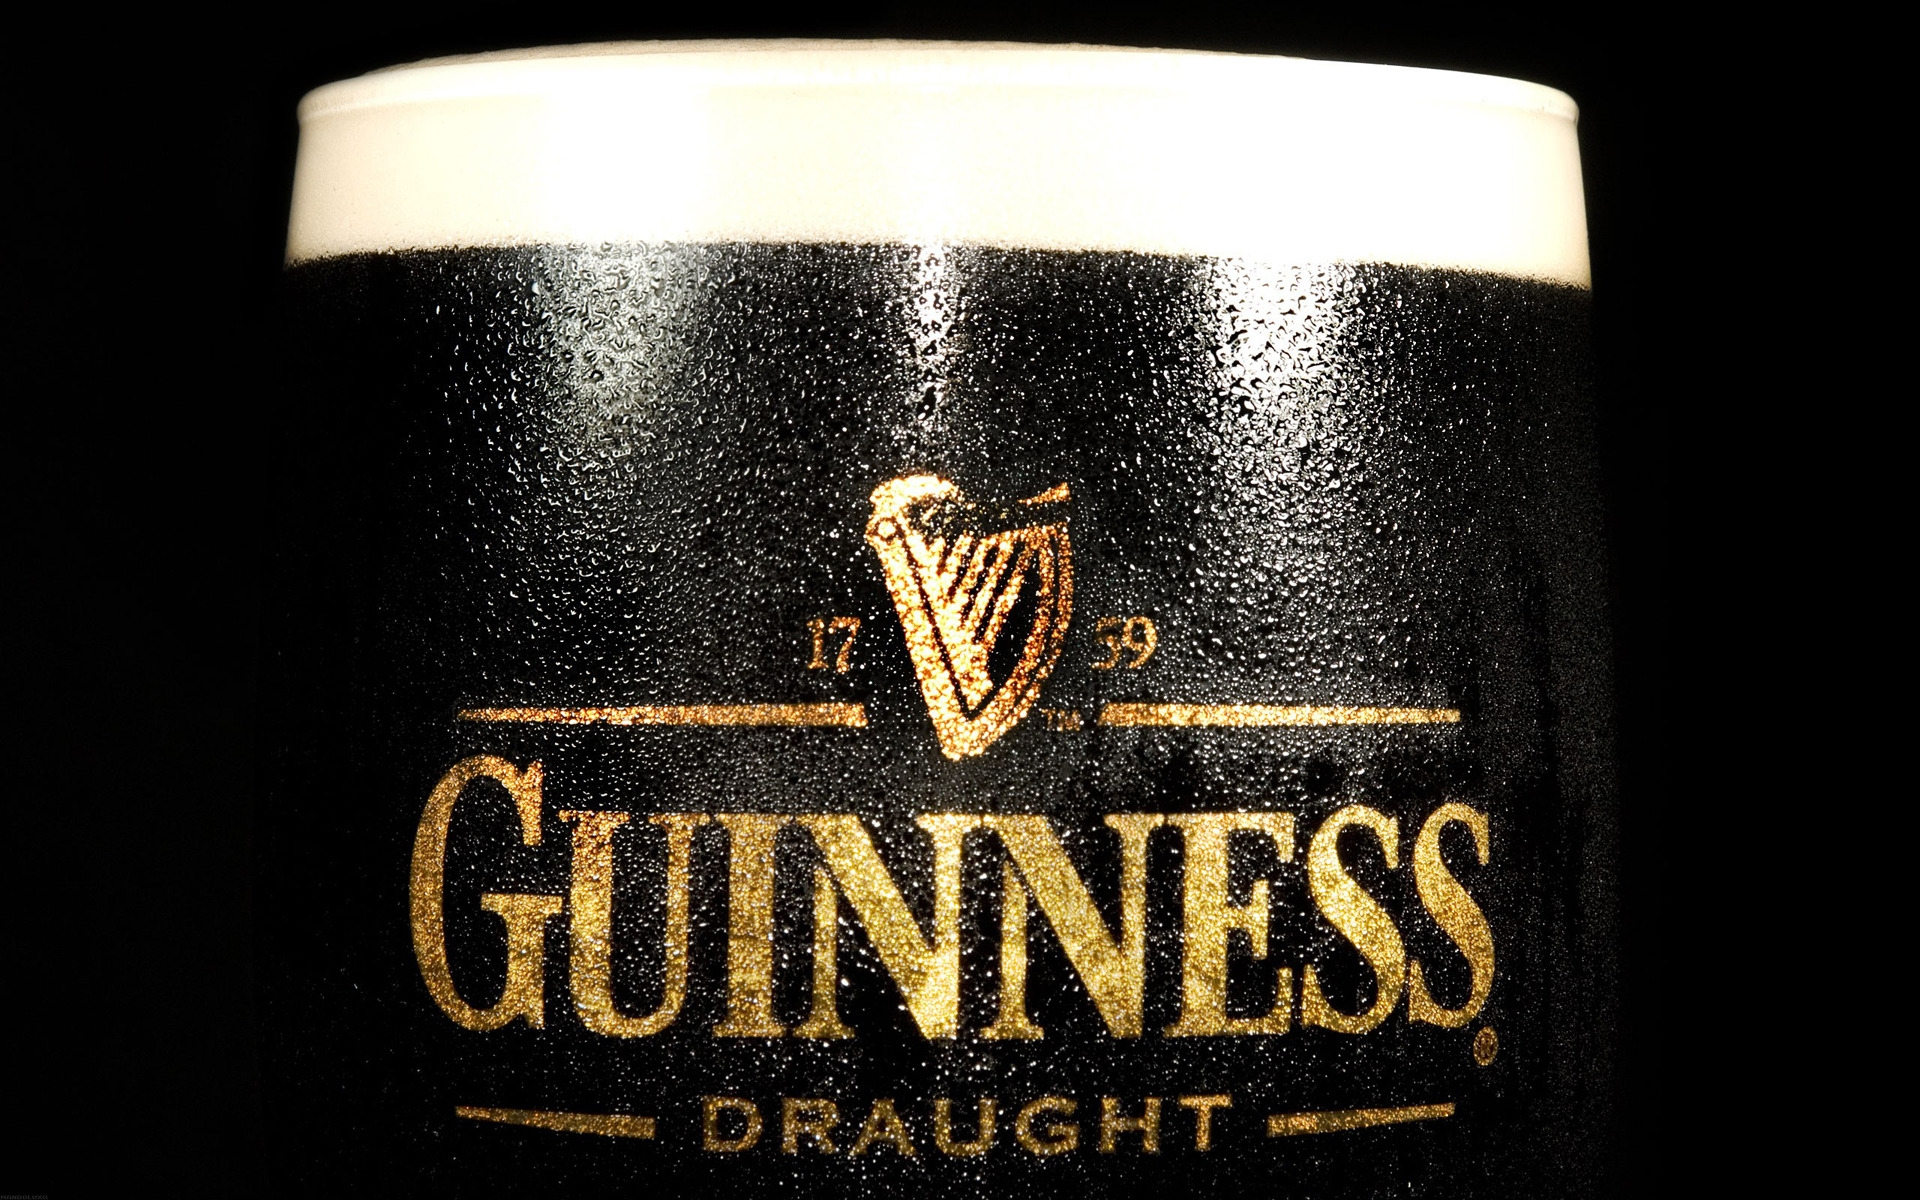 Guinness Draught for 1920 x 1200 widescreen resolution